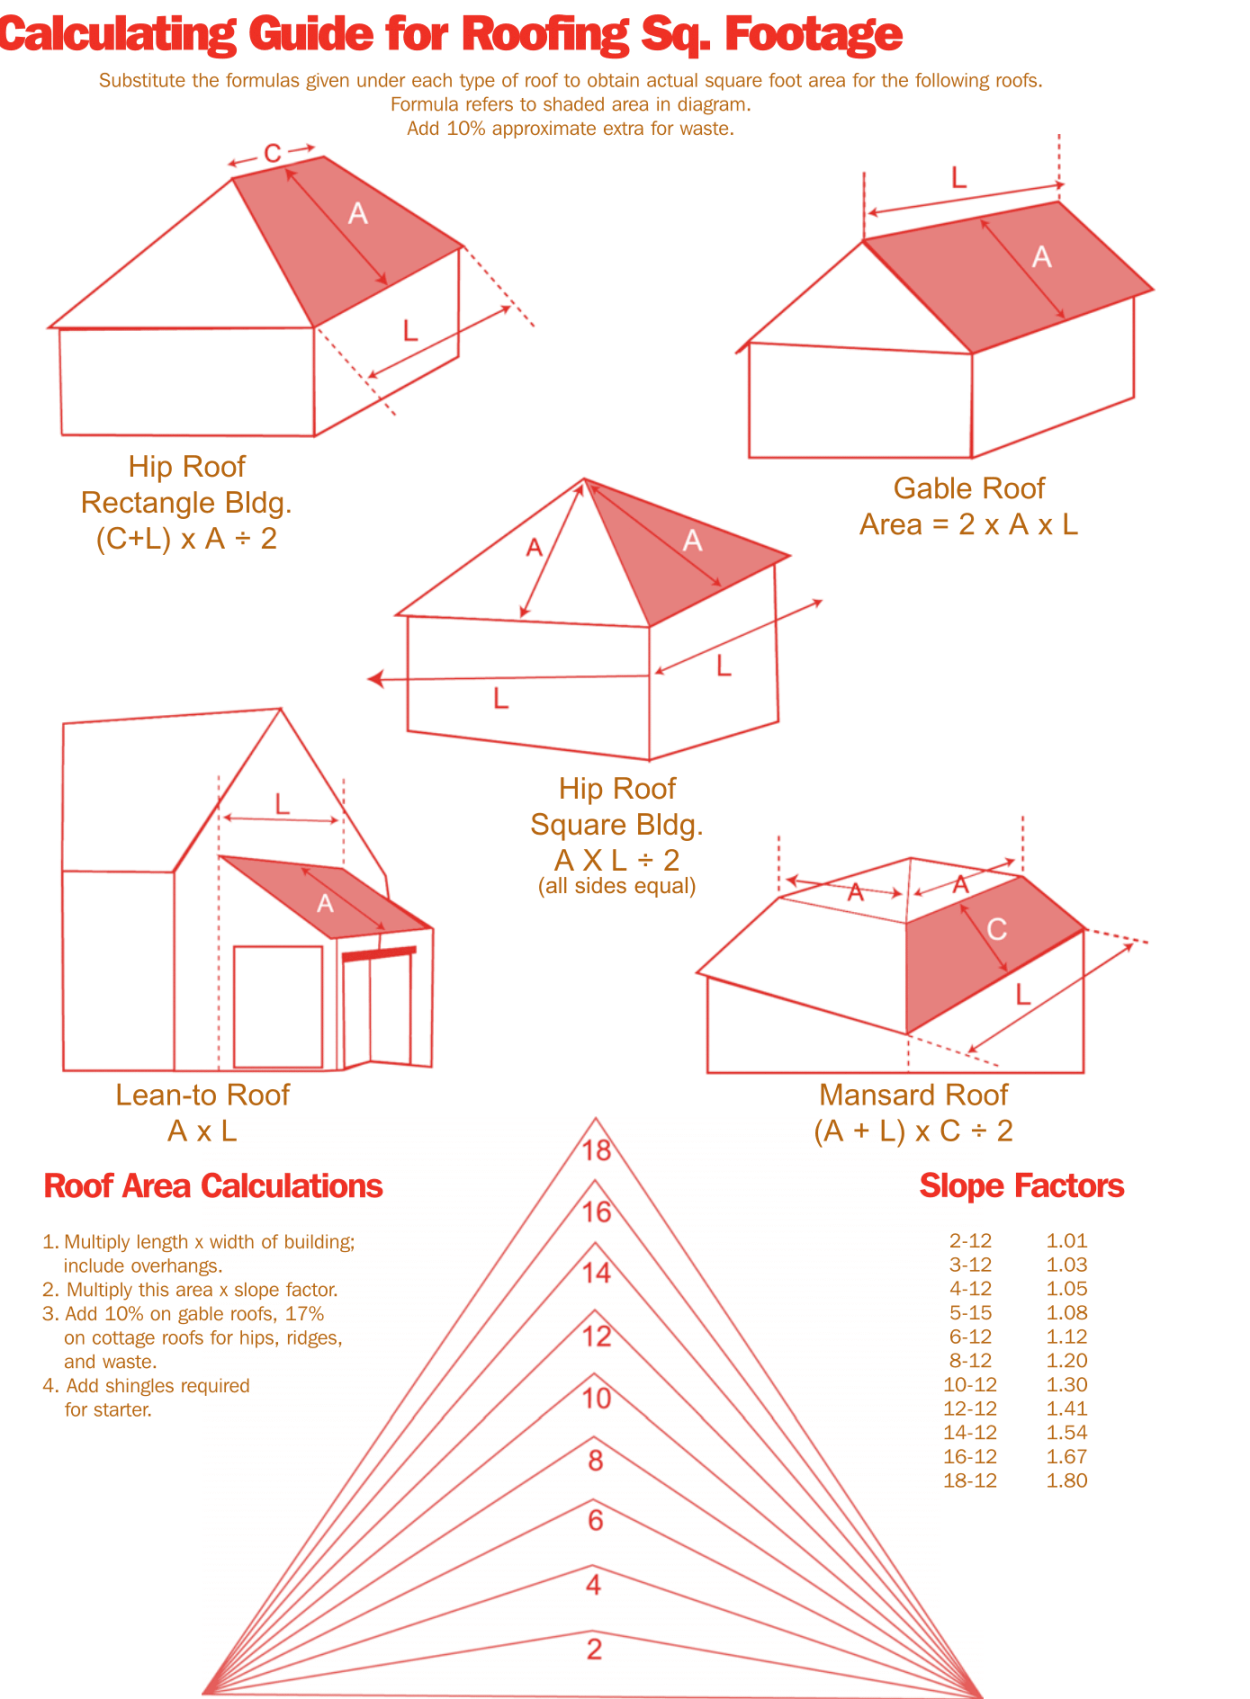 Roofing Calculator Estimate Roof Cost Per Sq Ft Free Roof Quotes Roofing Calculator Roofing Estimate Roof Cost